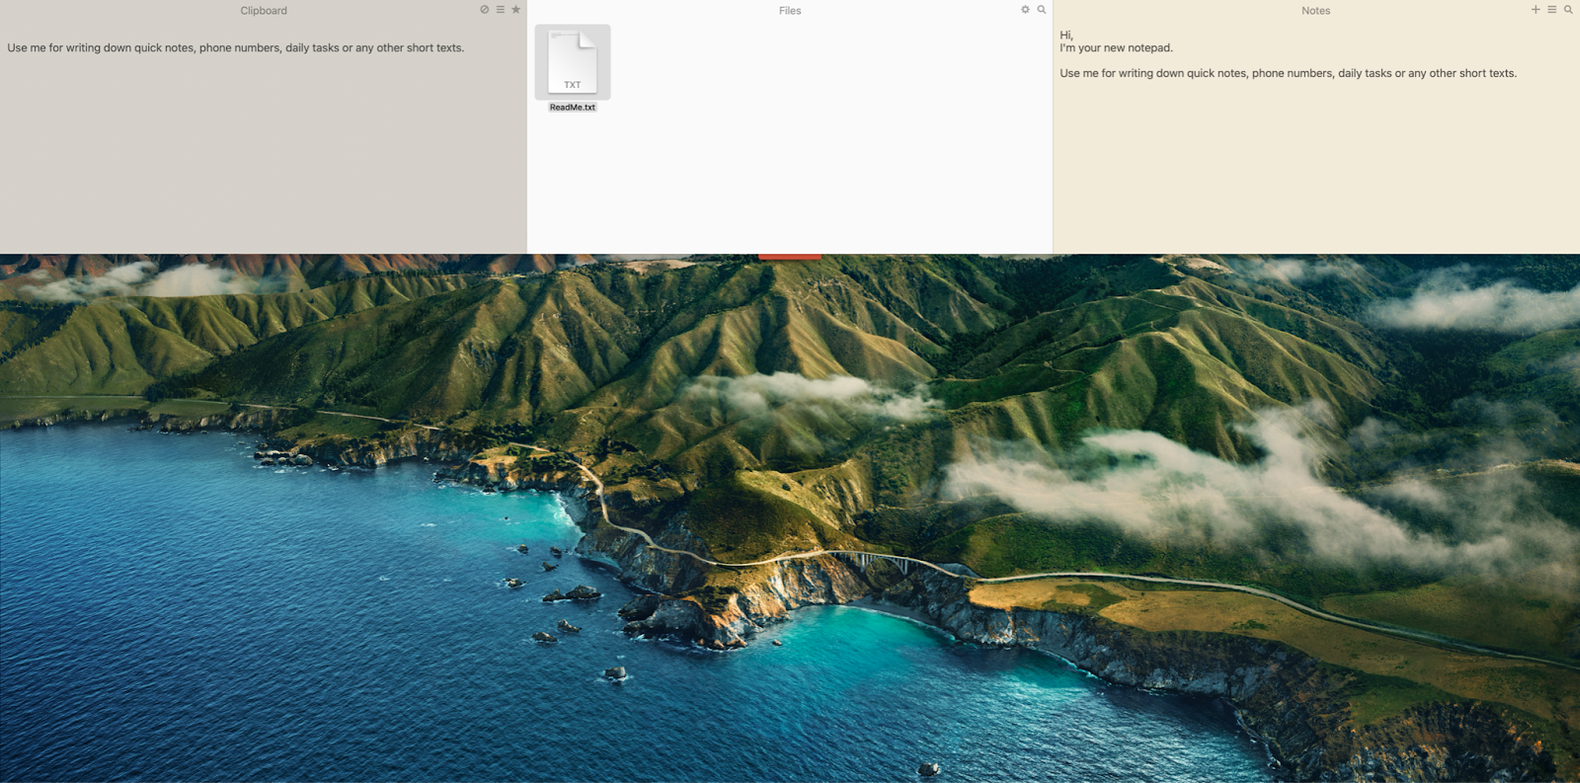 organize all the small notes and files